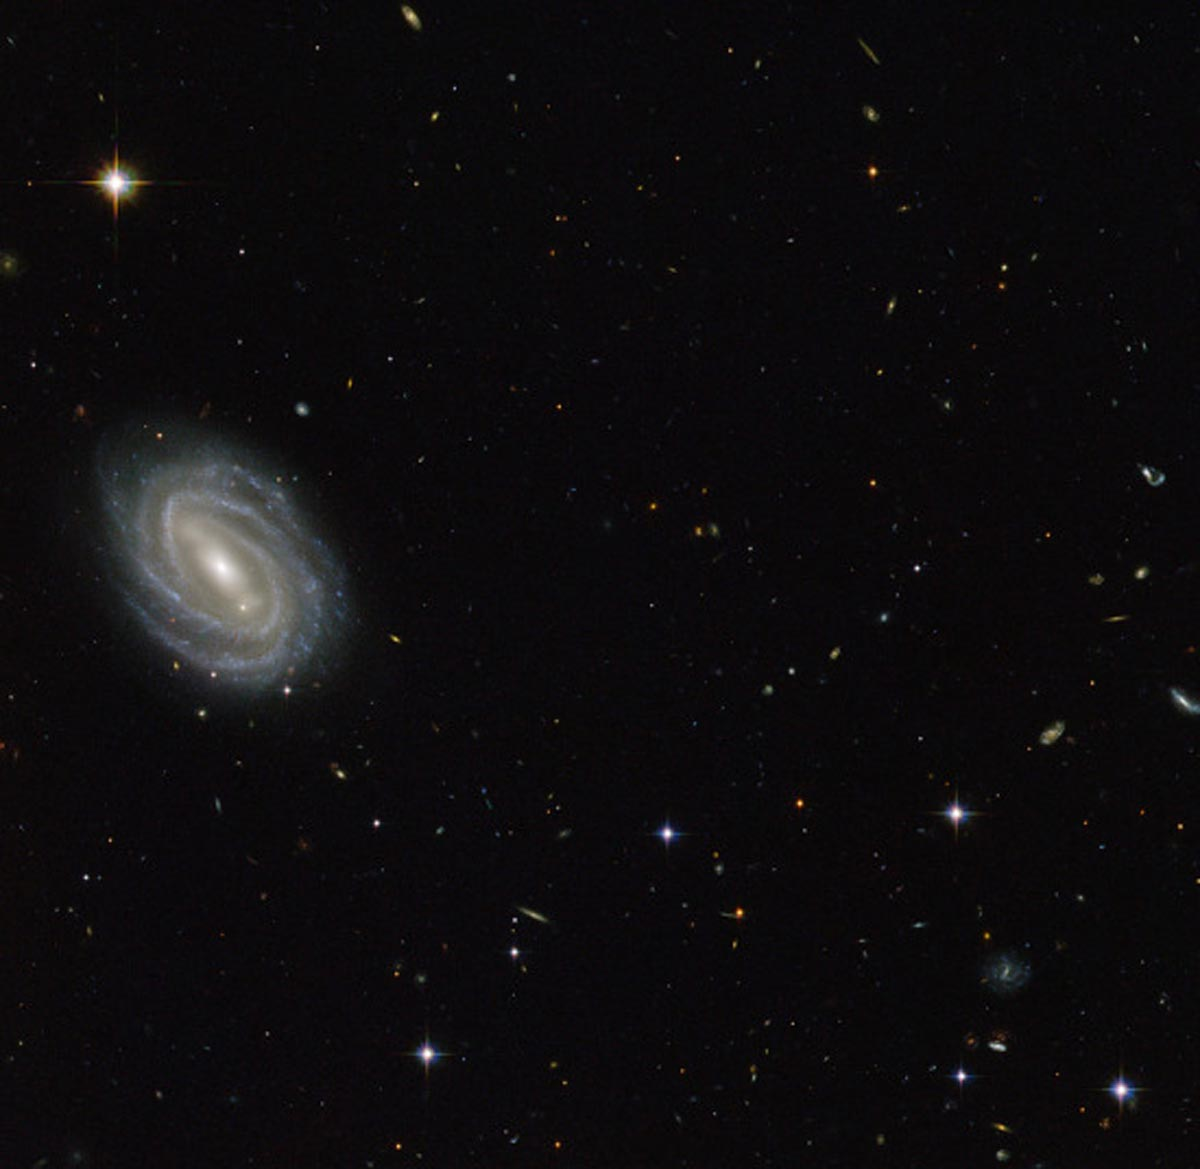 19. Magnifique image de la galaxie spirale PGC 54493, située dans la constellation du serpent. (Photo : NASA/ESA/Hubble)